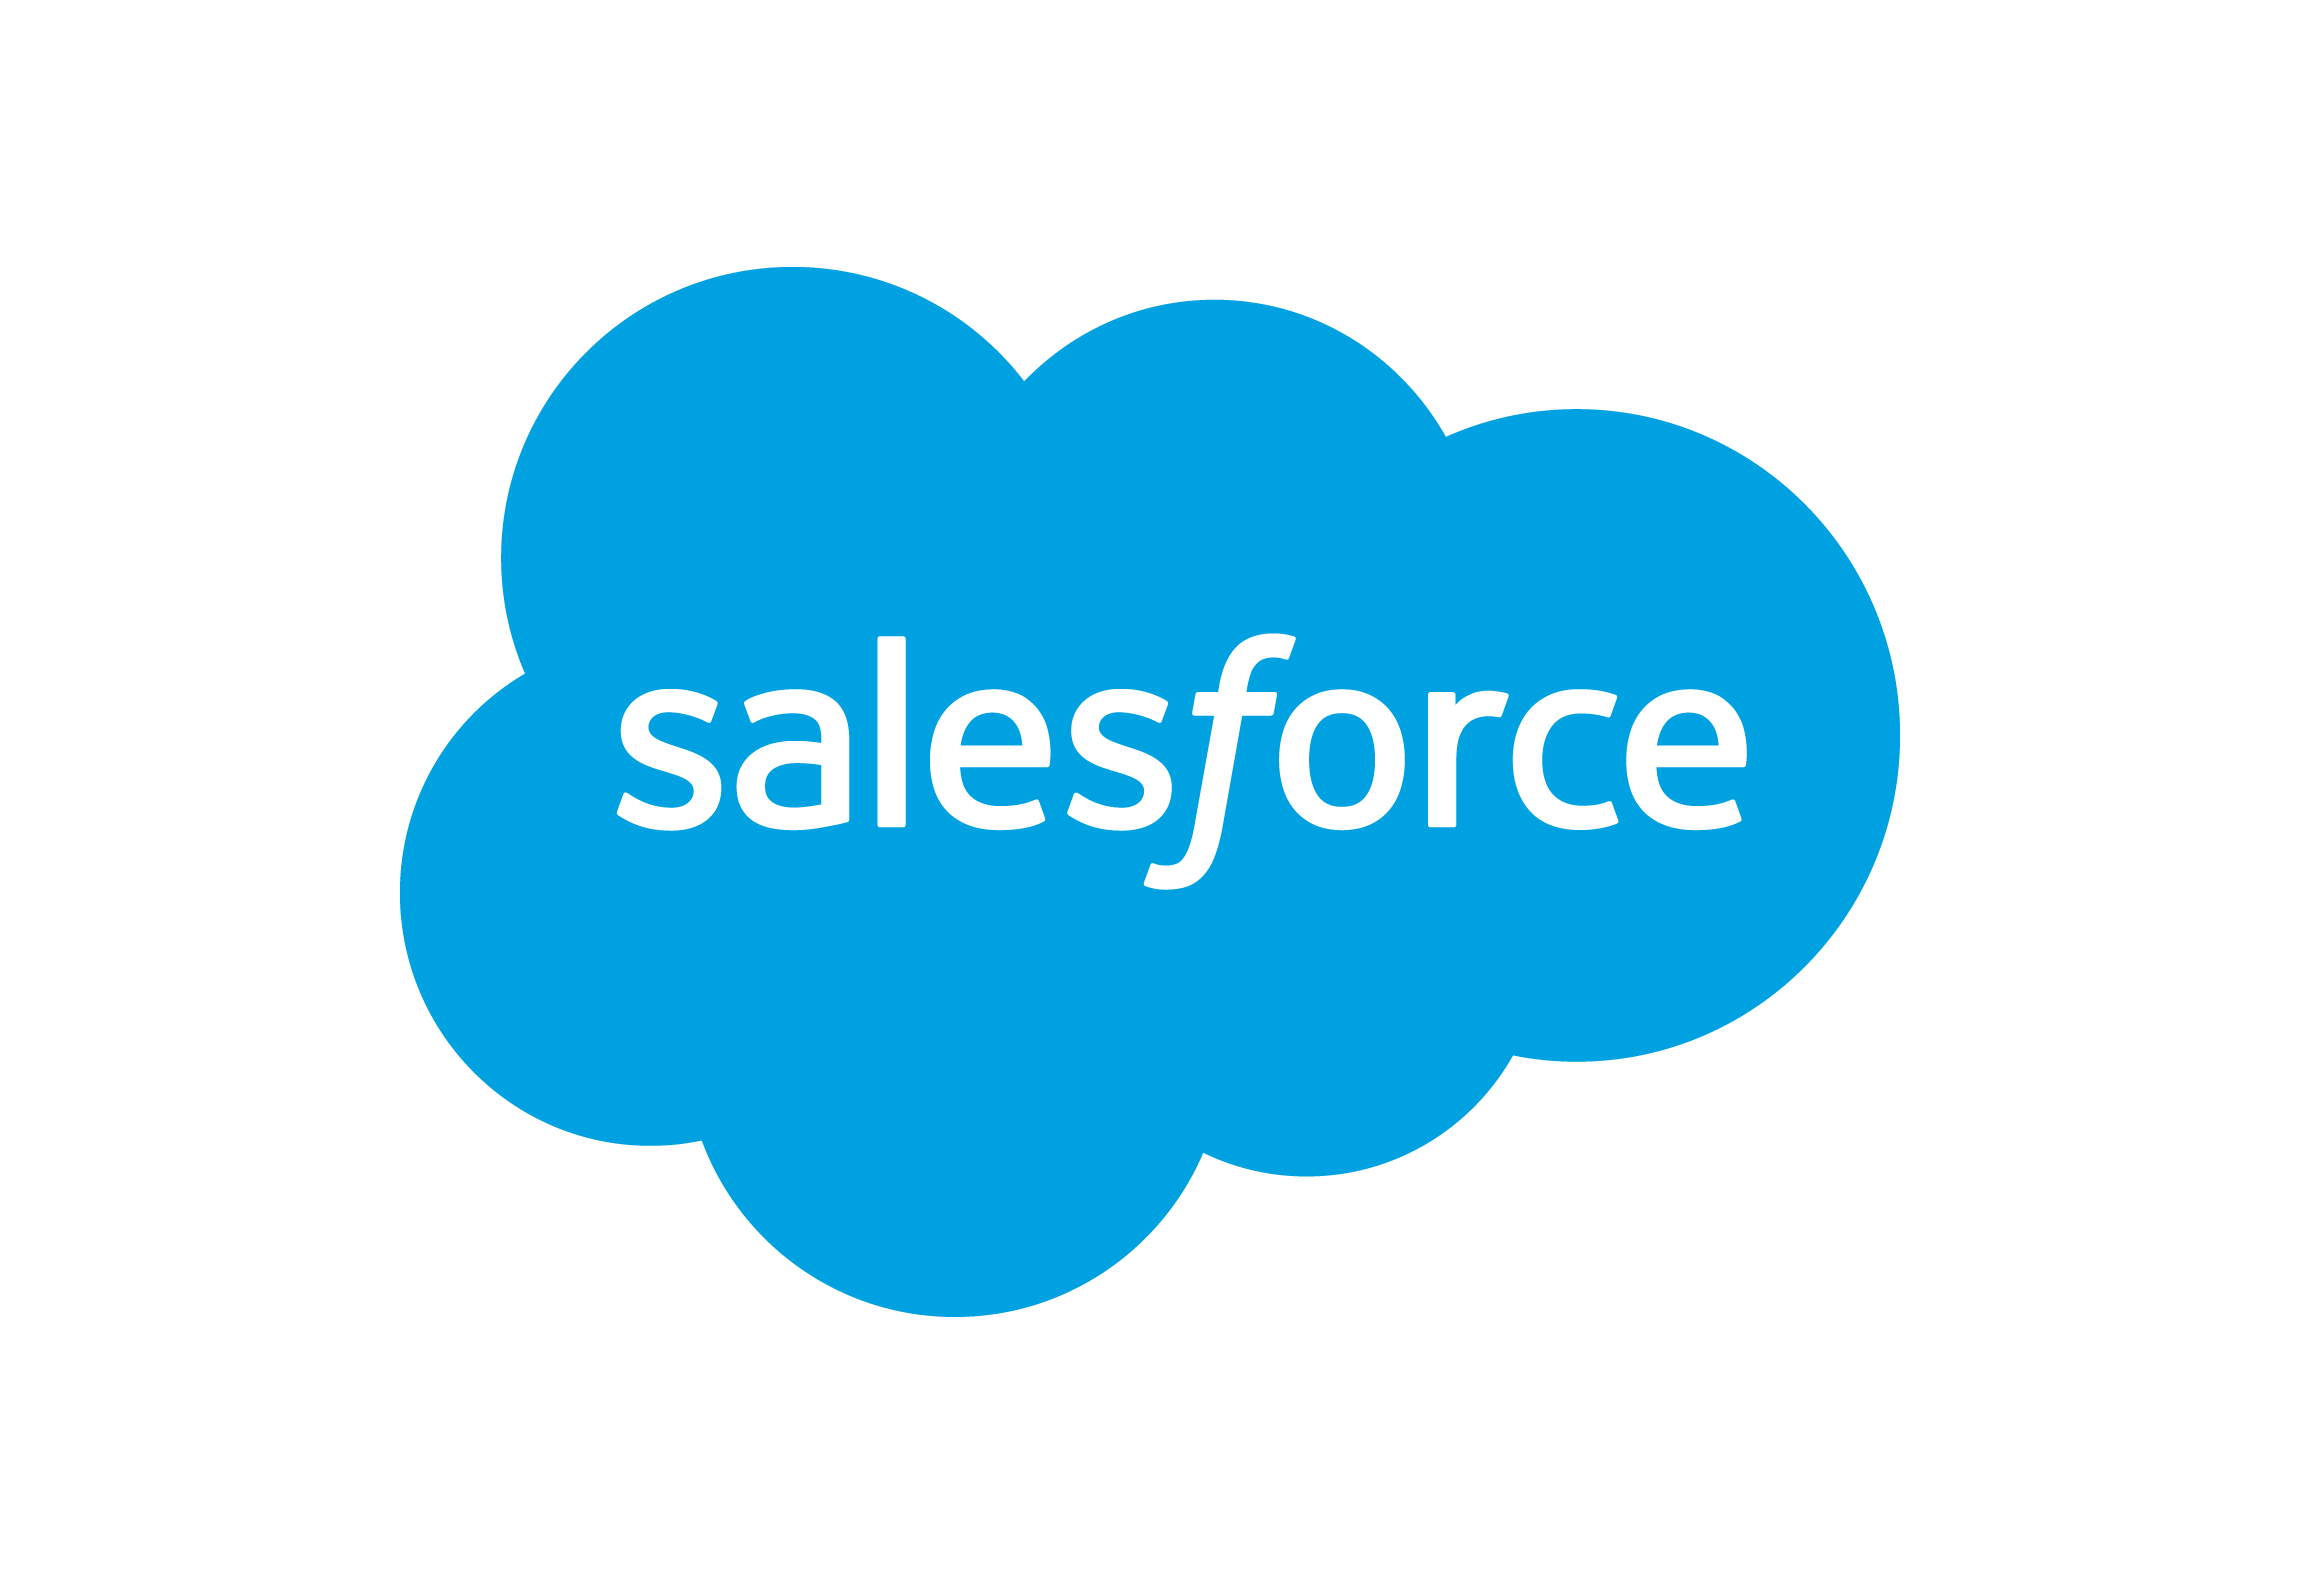 salesforce-logo-vector-png-salesforce-logo-png-2300